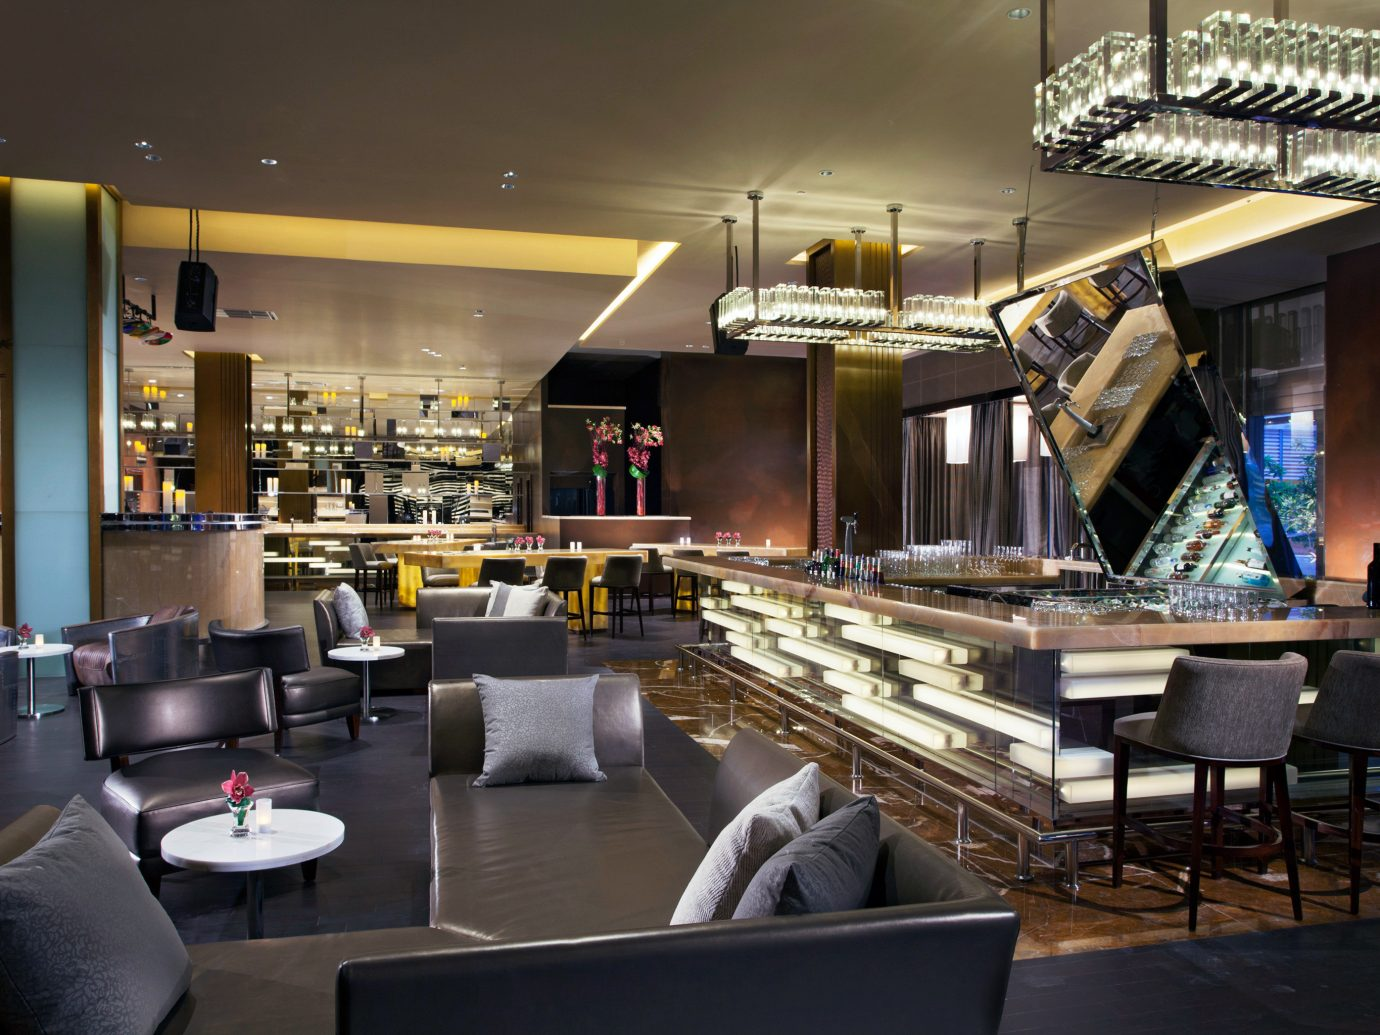 Bar Dining Drink Eat Hotels Living Lounge Luxury Modern Romantic indoor floor room ceiling restaurant interior design meal café furniture coffeehouse area several